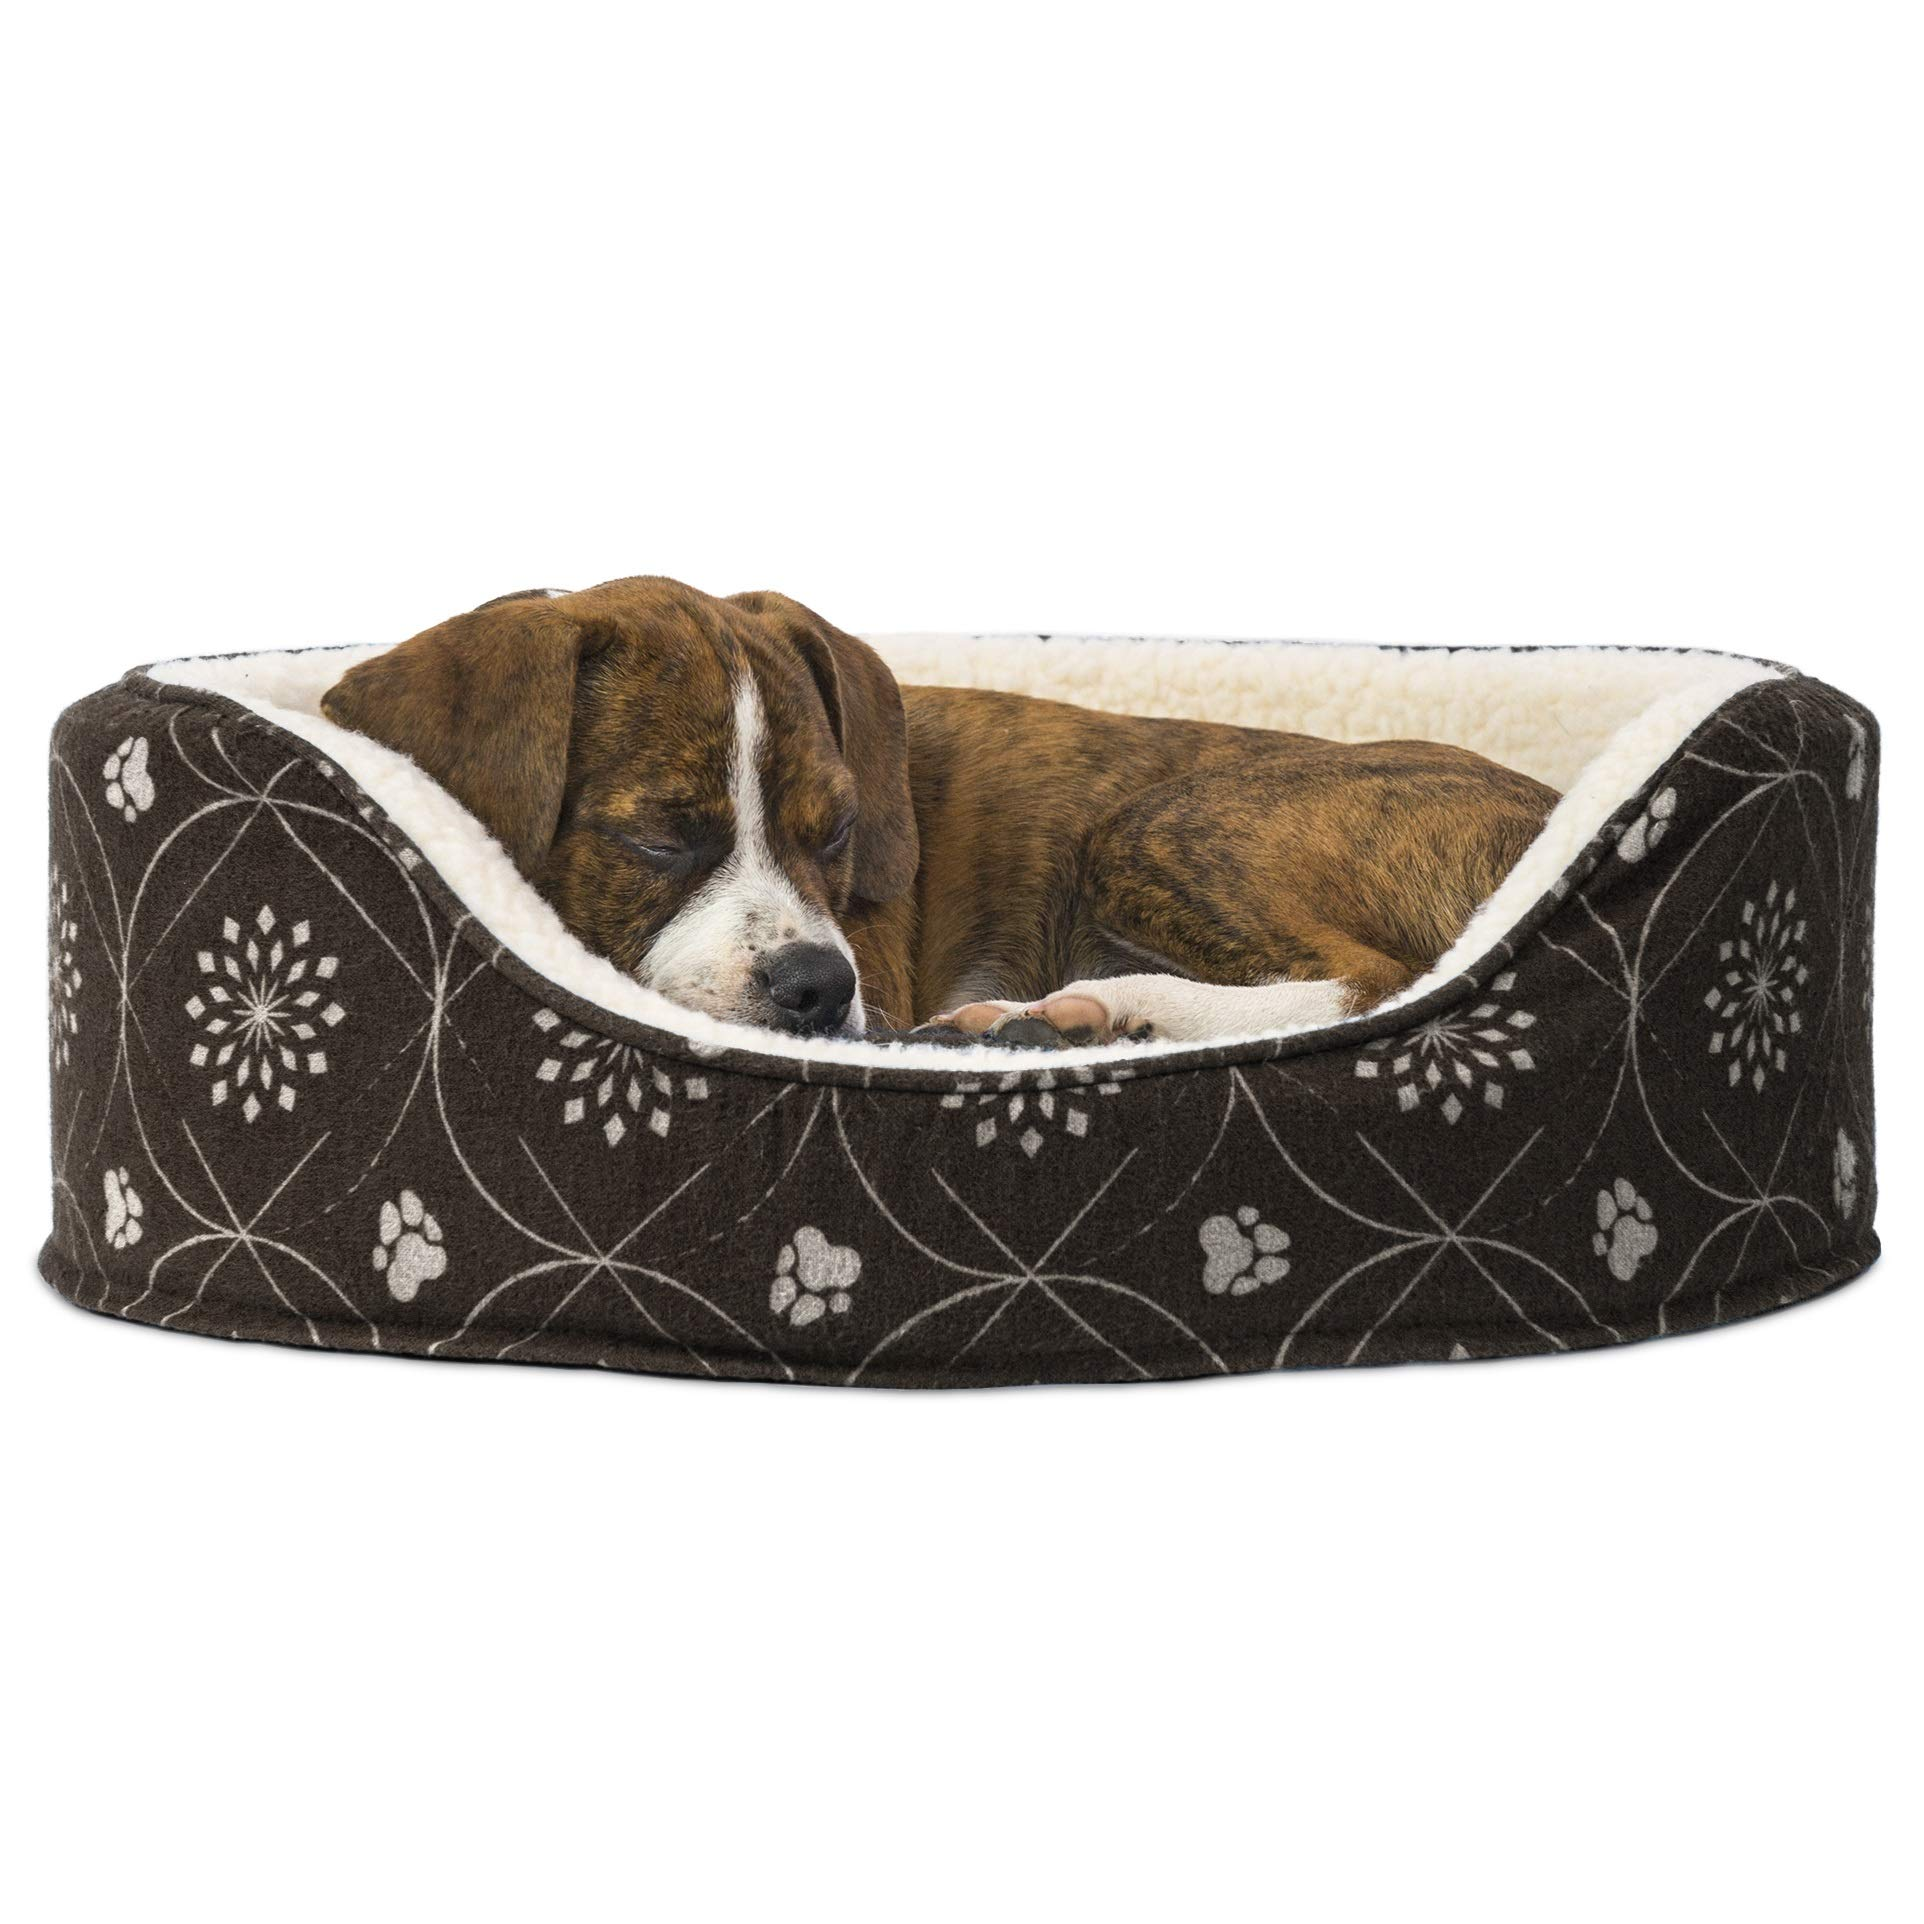 Furhaven Pet – Calming Anti-Anxiety Round Oval Nest Lounger Dog Bed with Removable Base for Dogs & Cats – Multiple…